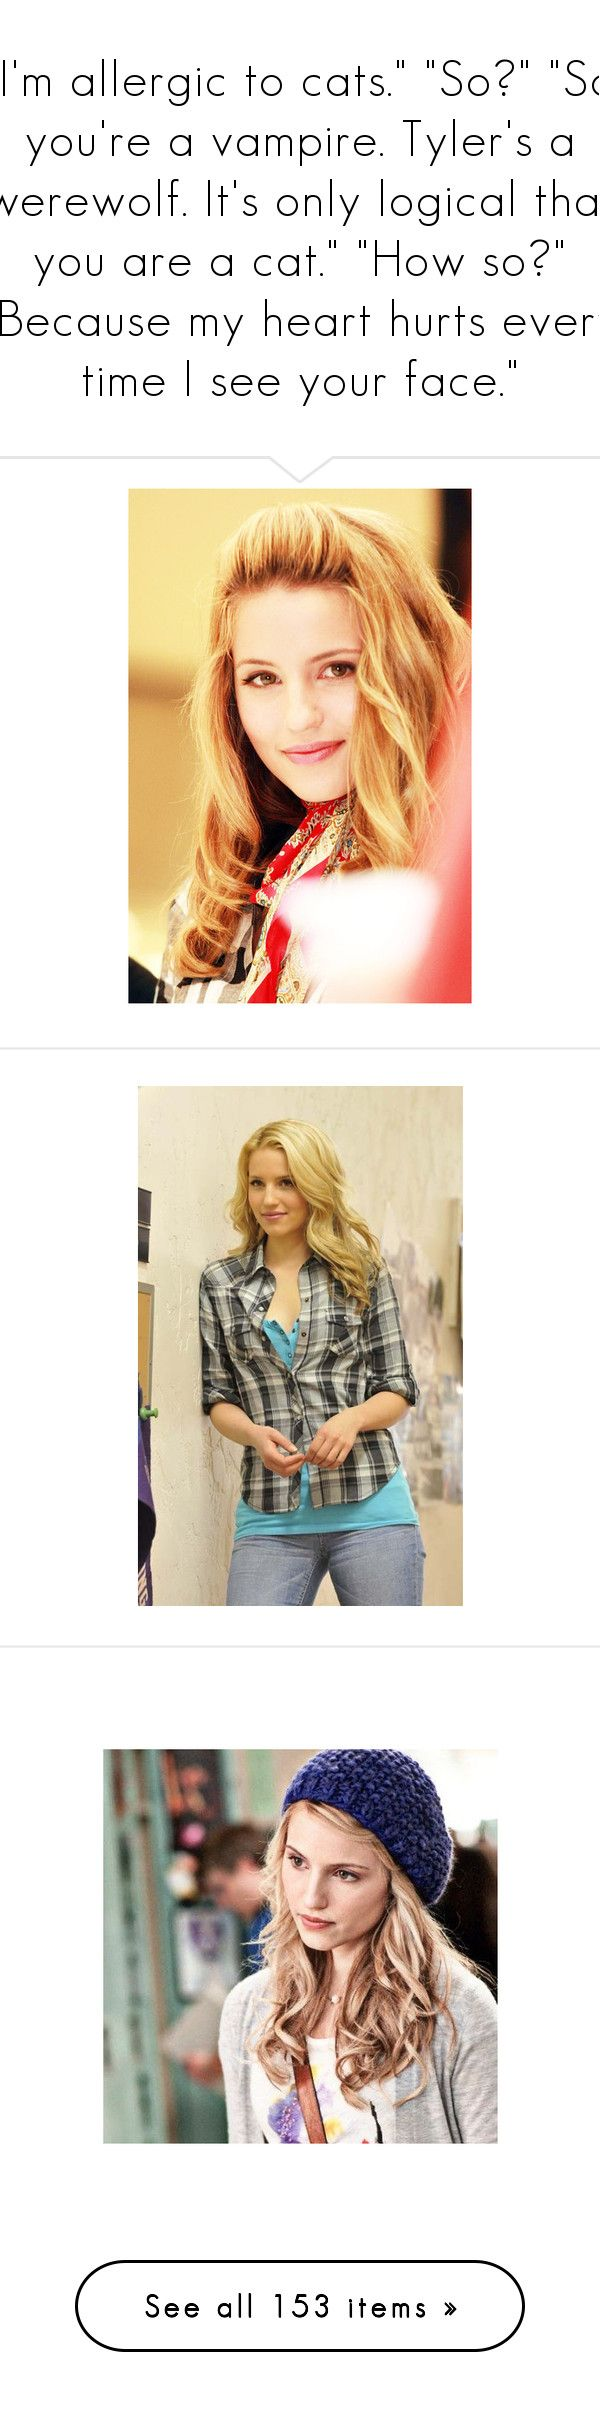 """""""I'm allergic to cats."""" """"So?"""" """"So you're a vampire. Tyler's a werewolf. It's only logical that you are a cat."""" """"How so?"""" """"Because my heart hurts every time I see your face."""" by demiwitch-of-mischief ❤ liked on Polyvore featuring dianna agron, dianna, models, people, girls, glee, pictures, dianna argon, dianna agron icon and hair"""